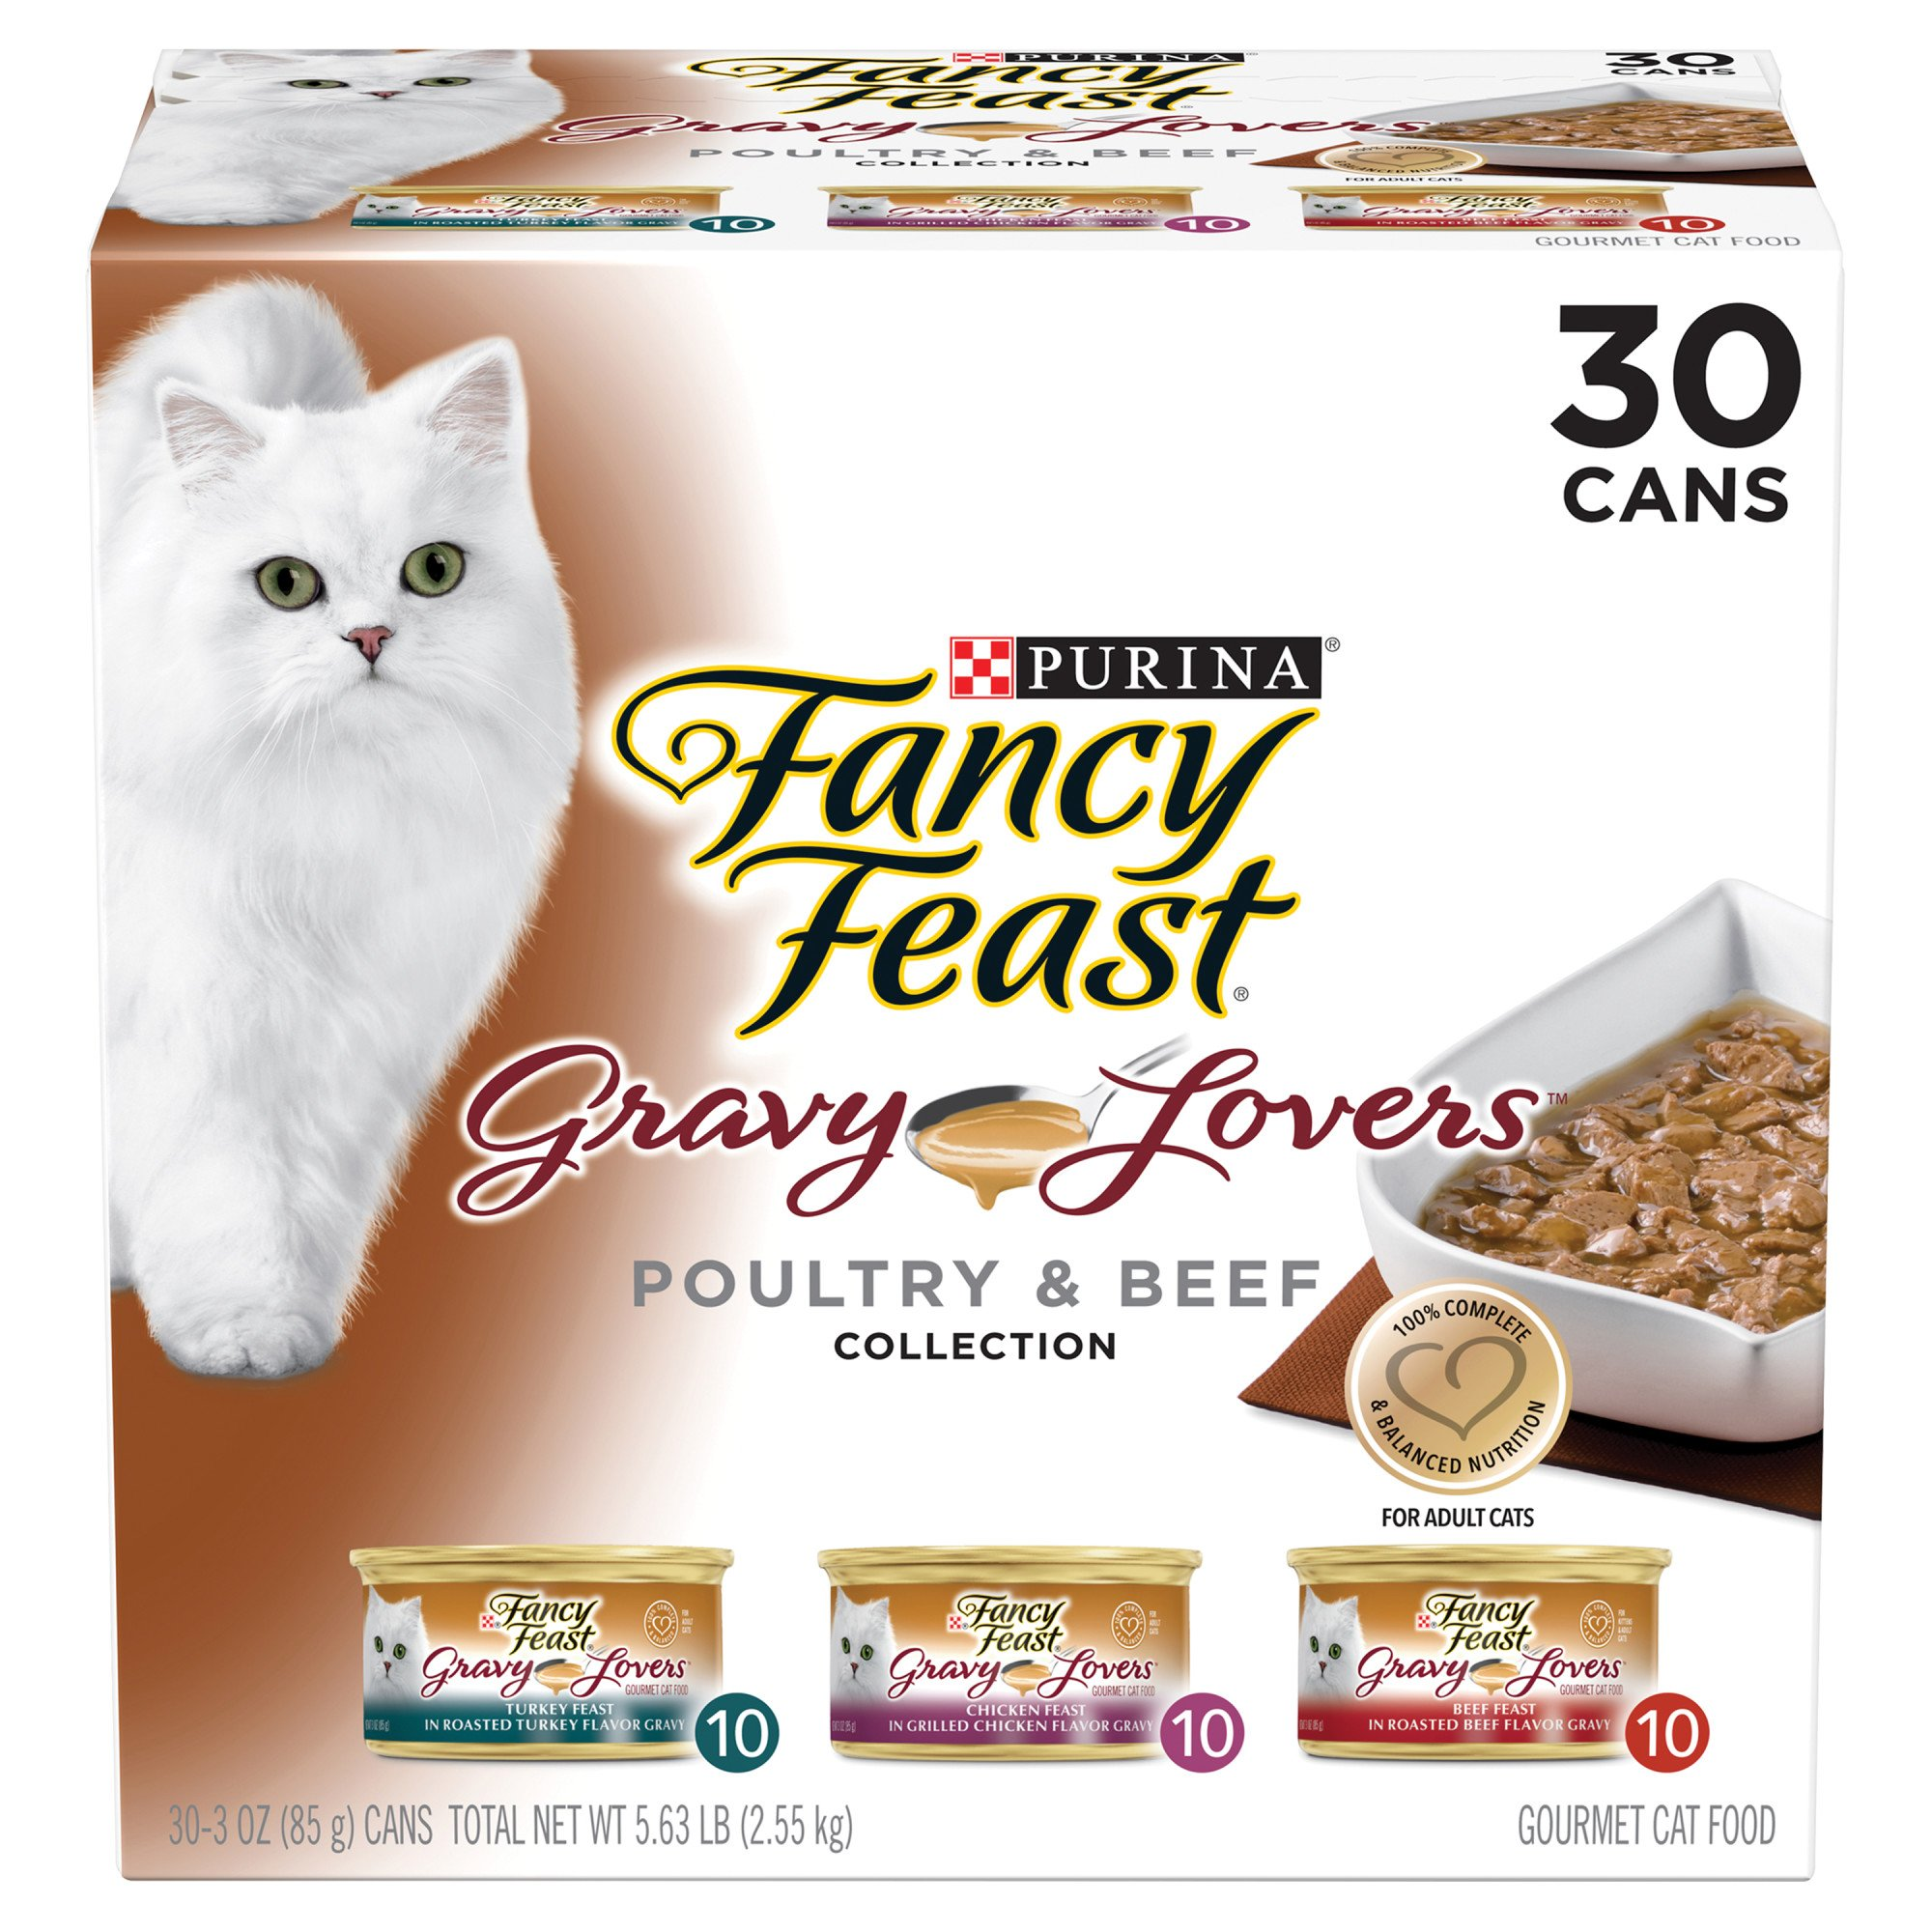 Purina Fancy Feast Gravy Lovers Poultry & Beef Feast Collection Wet Cat Food Variety Pack, 3 oz., Count of 30